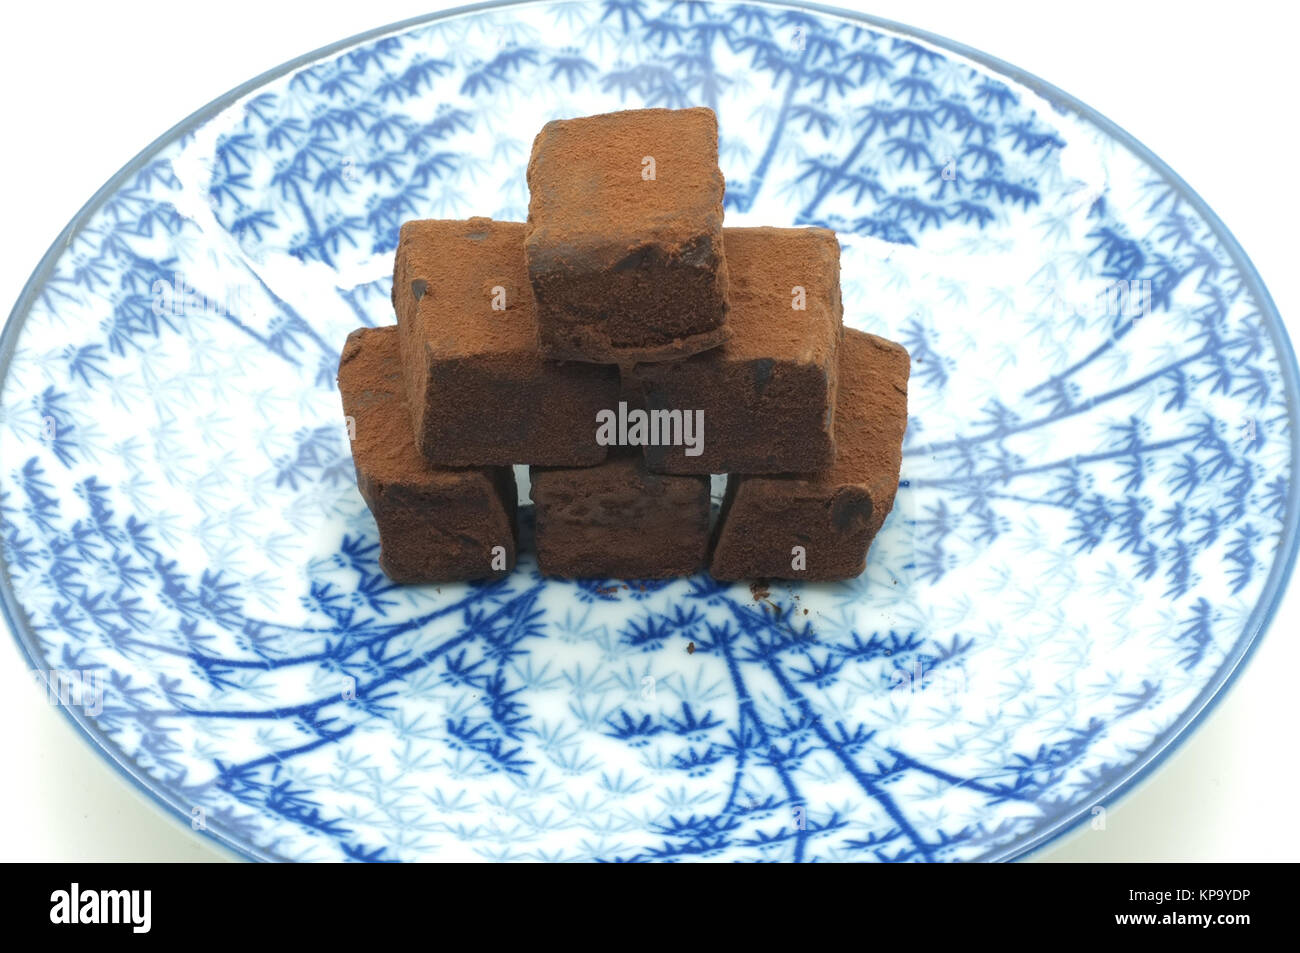 Chocolate stacking on dish - Stock Image